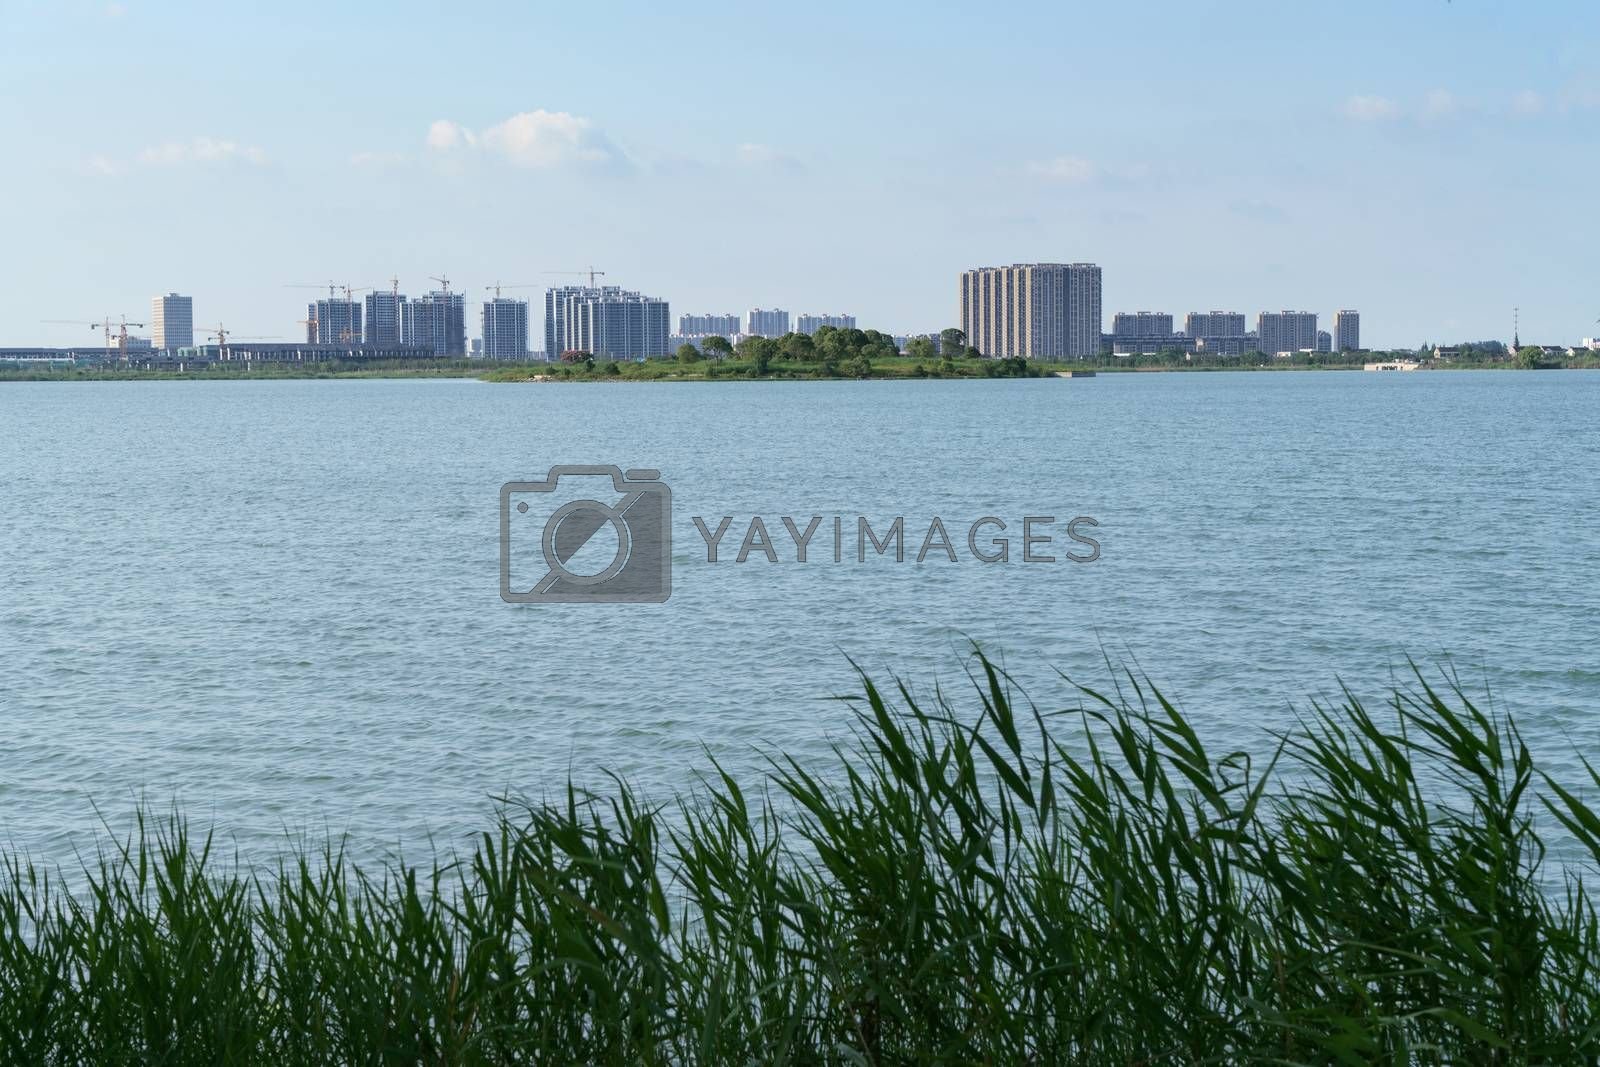 The city on the opposite side of the lake. Photo in Suzhou, China.